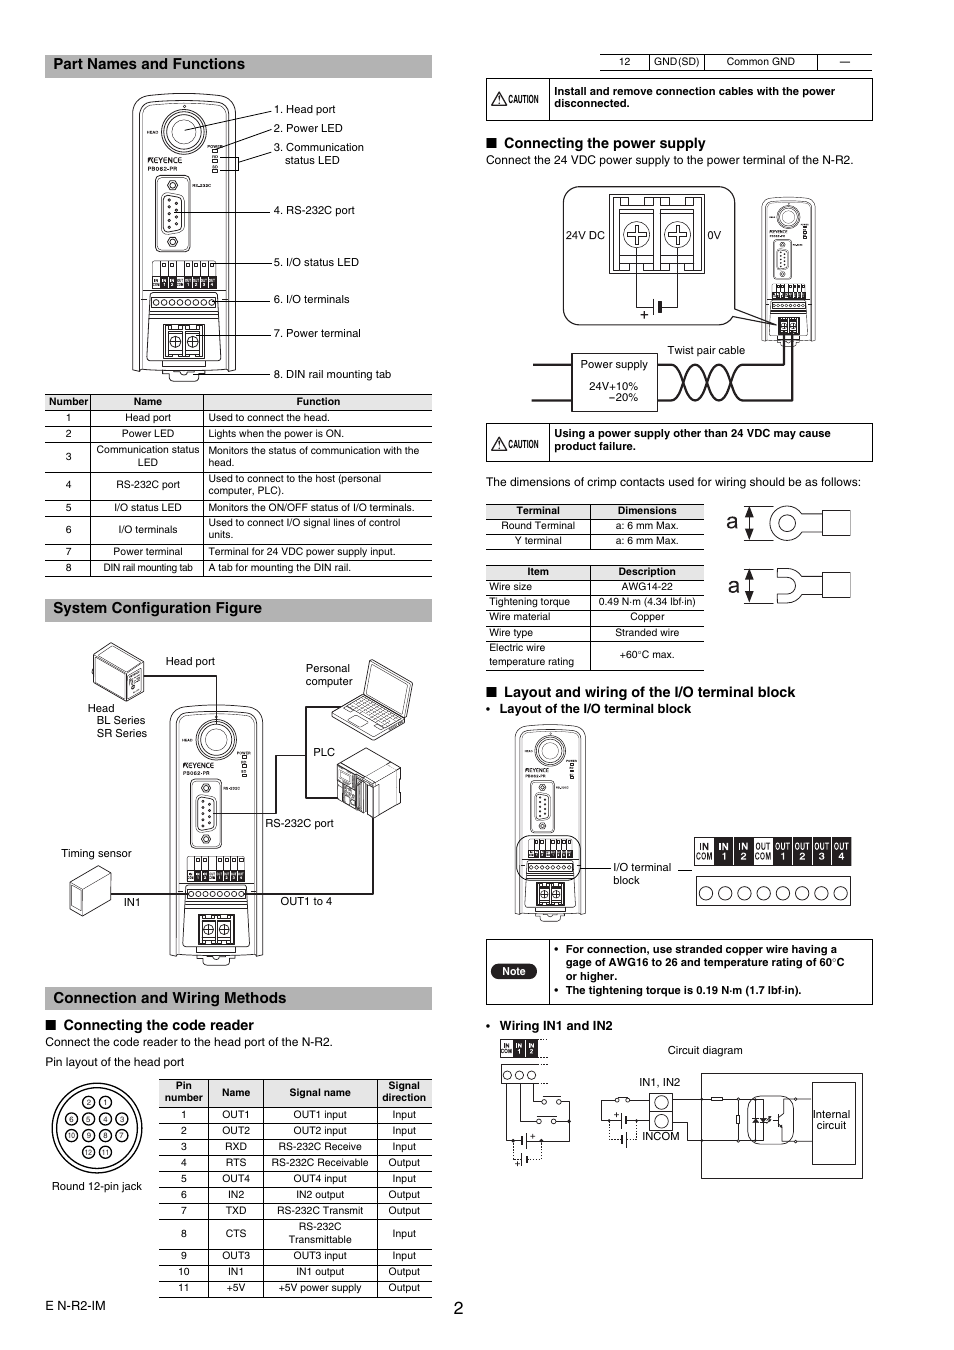 Part Names And Functions System Configuration Figure